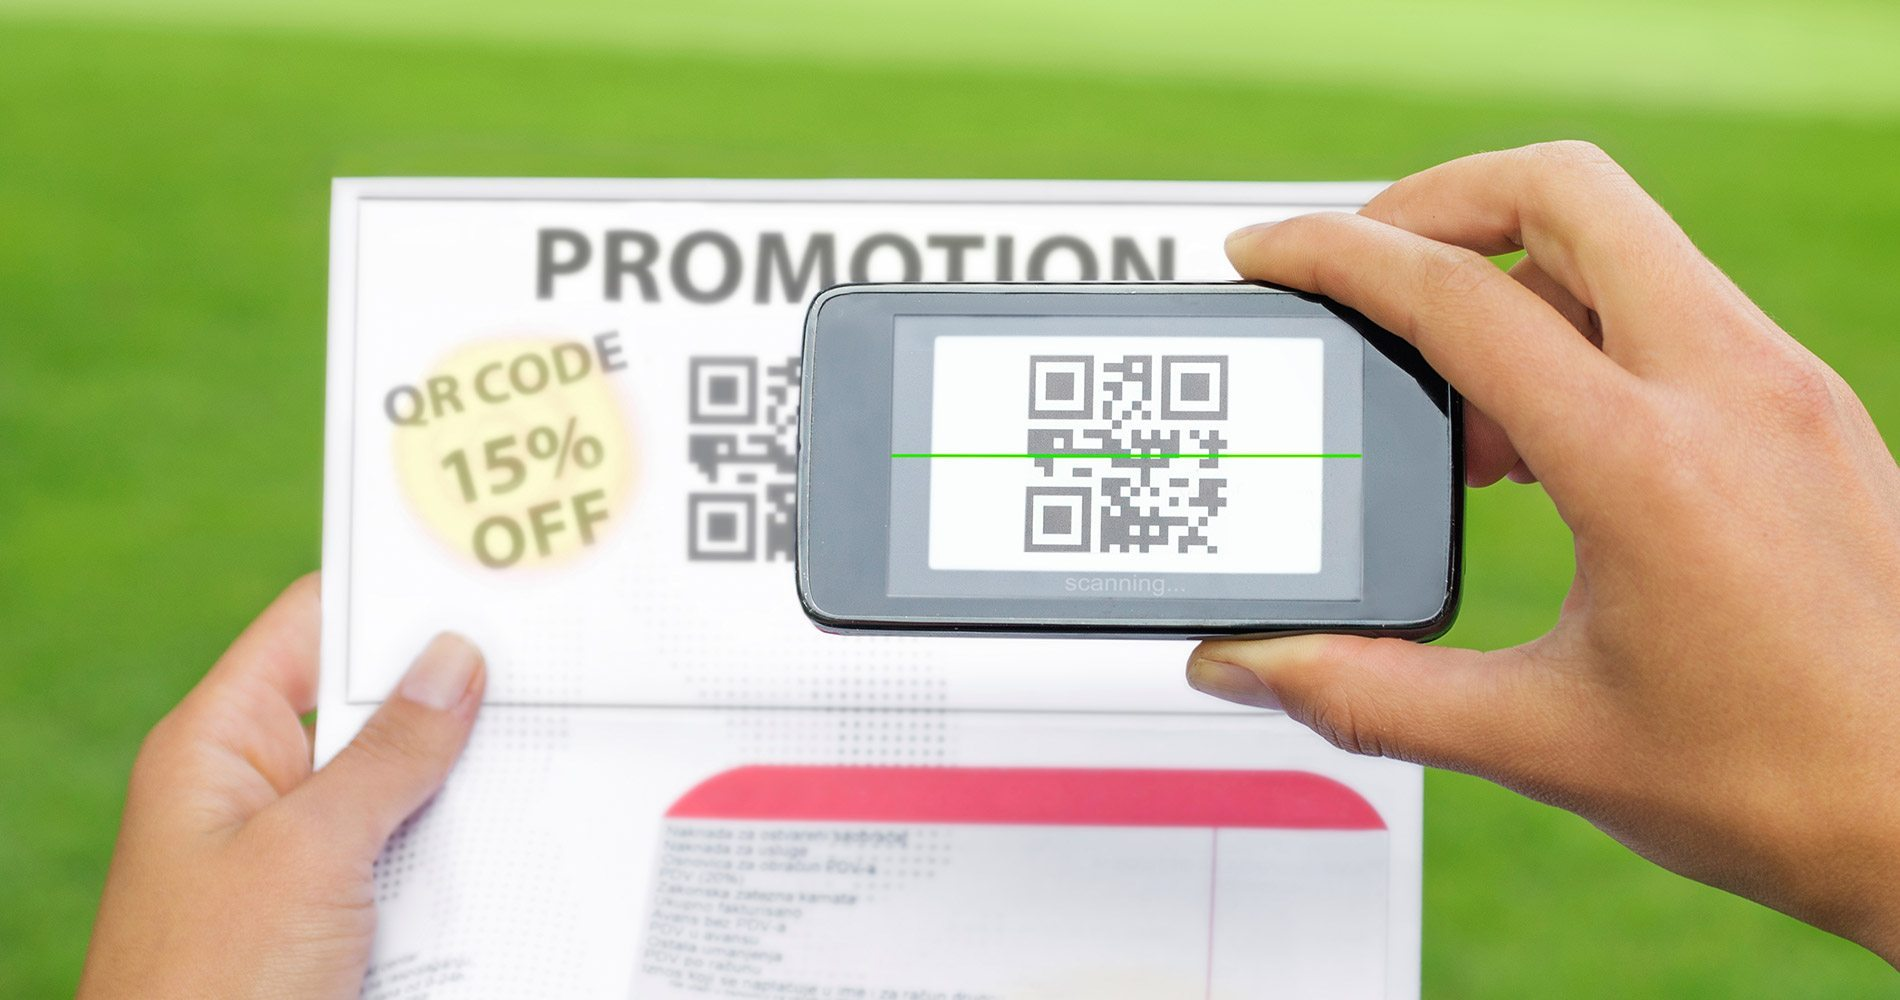 QR Codes enhance print and promotional campaigns